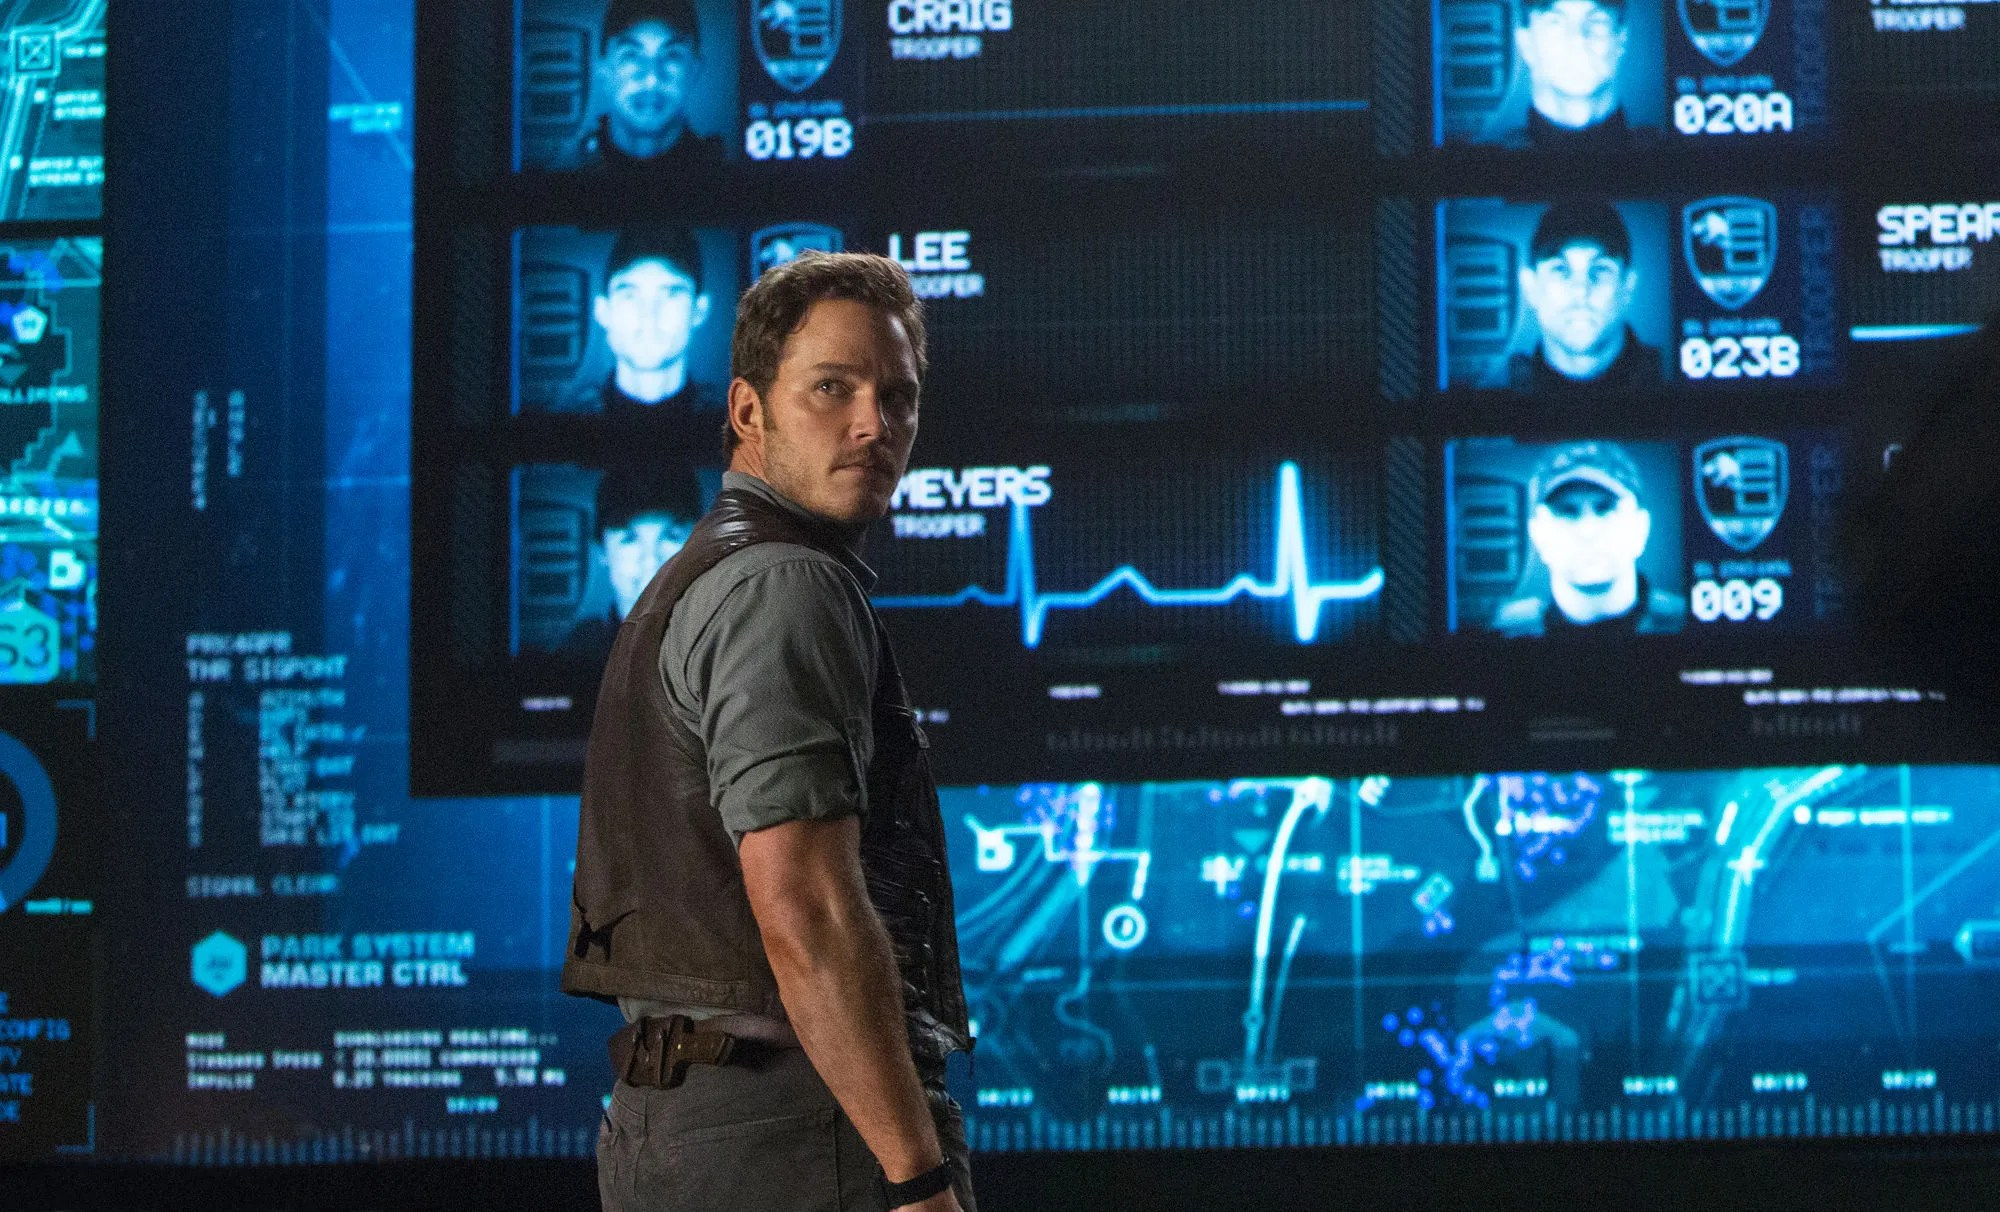 Box Office World Jurassic World Beats Avengers Worldwide Box Office Record